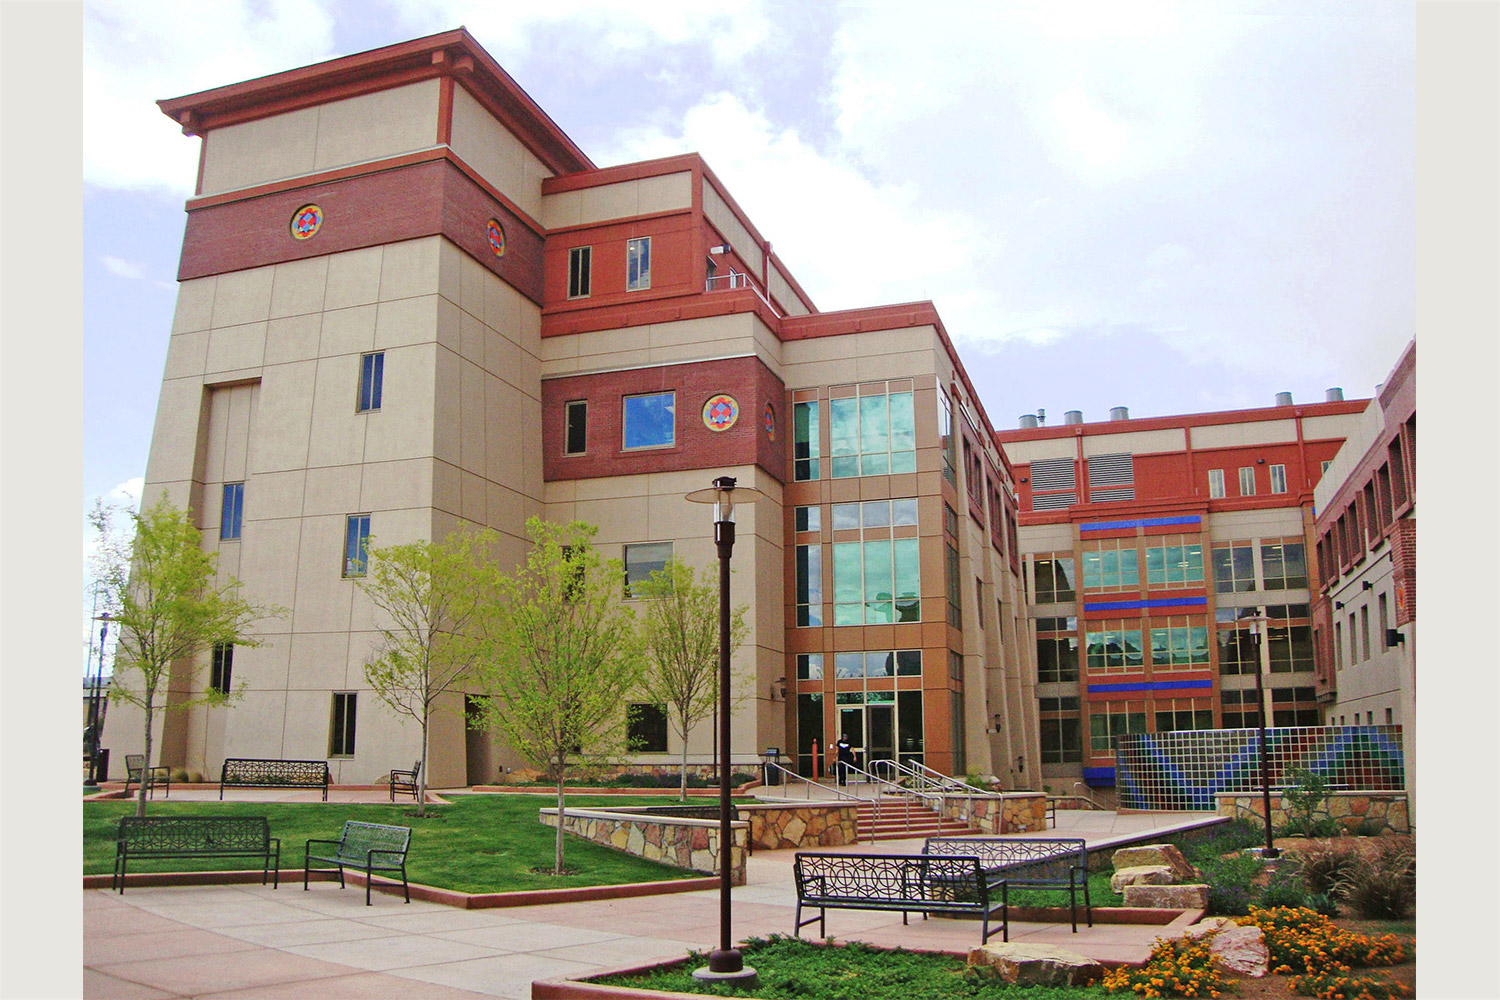 Projects_1500_UTEP_01.jpg